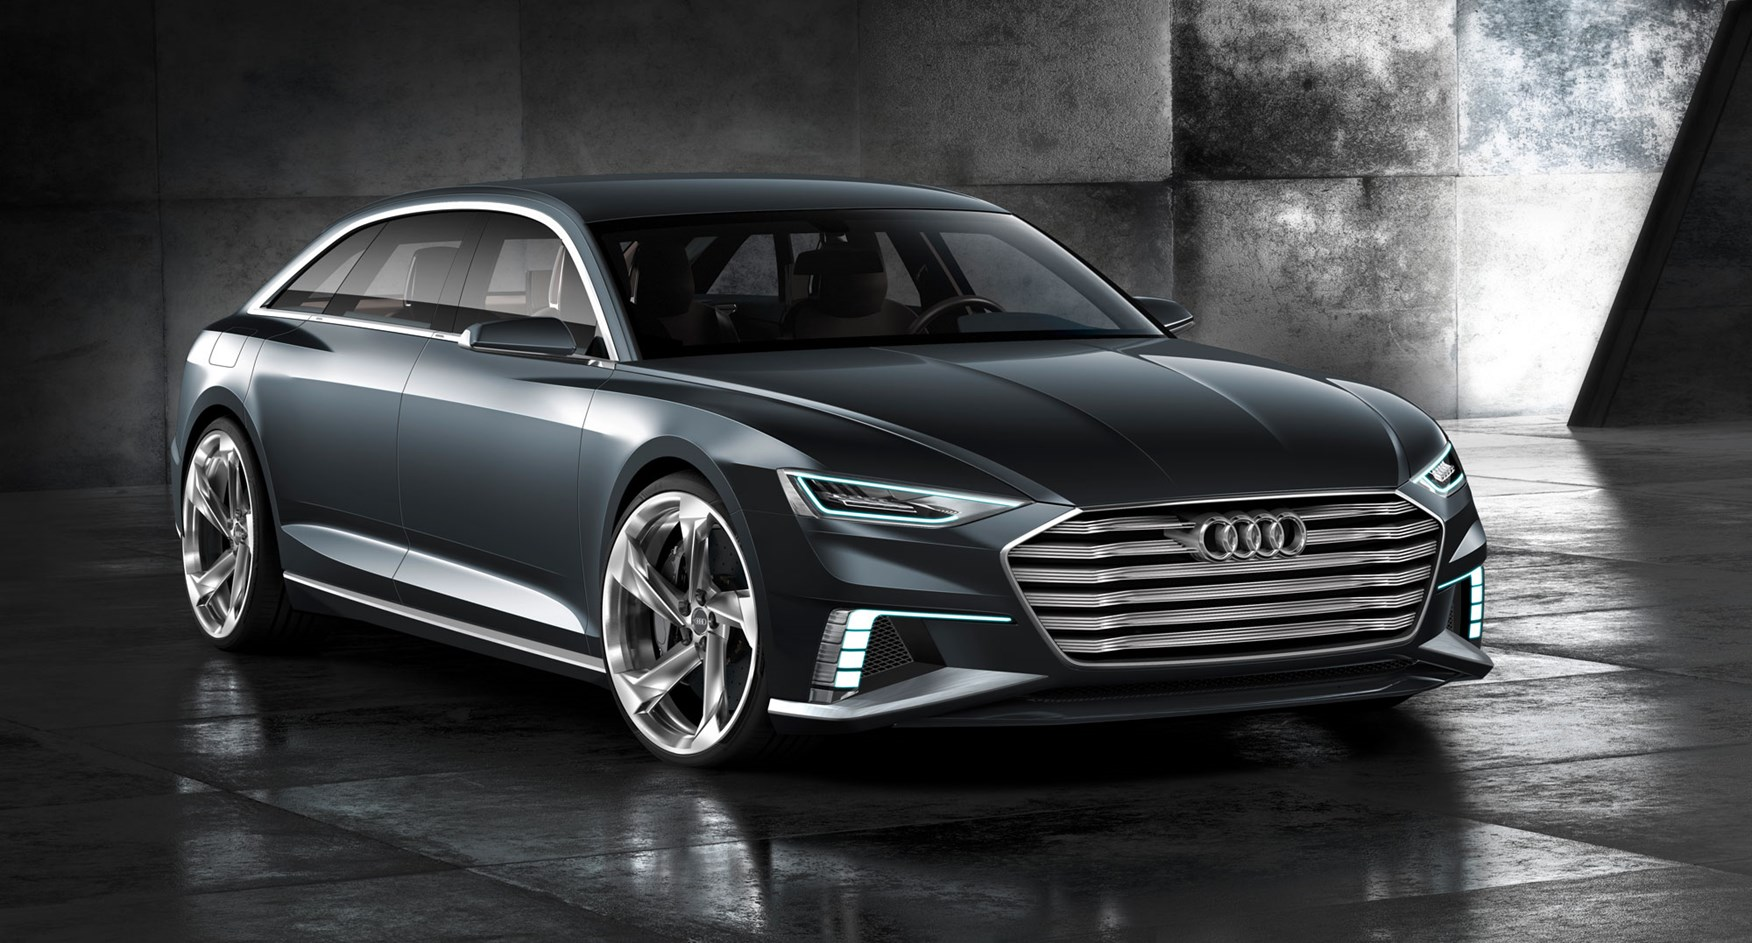 Audi Prologue Avant Concept Want More Doors With That By - Audi car 2015